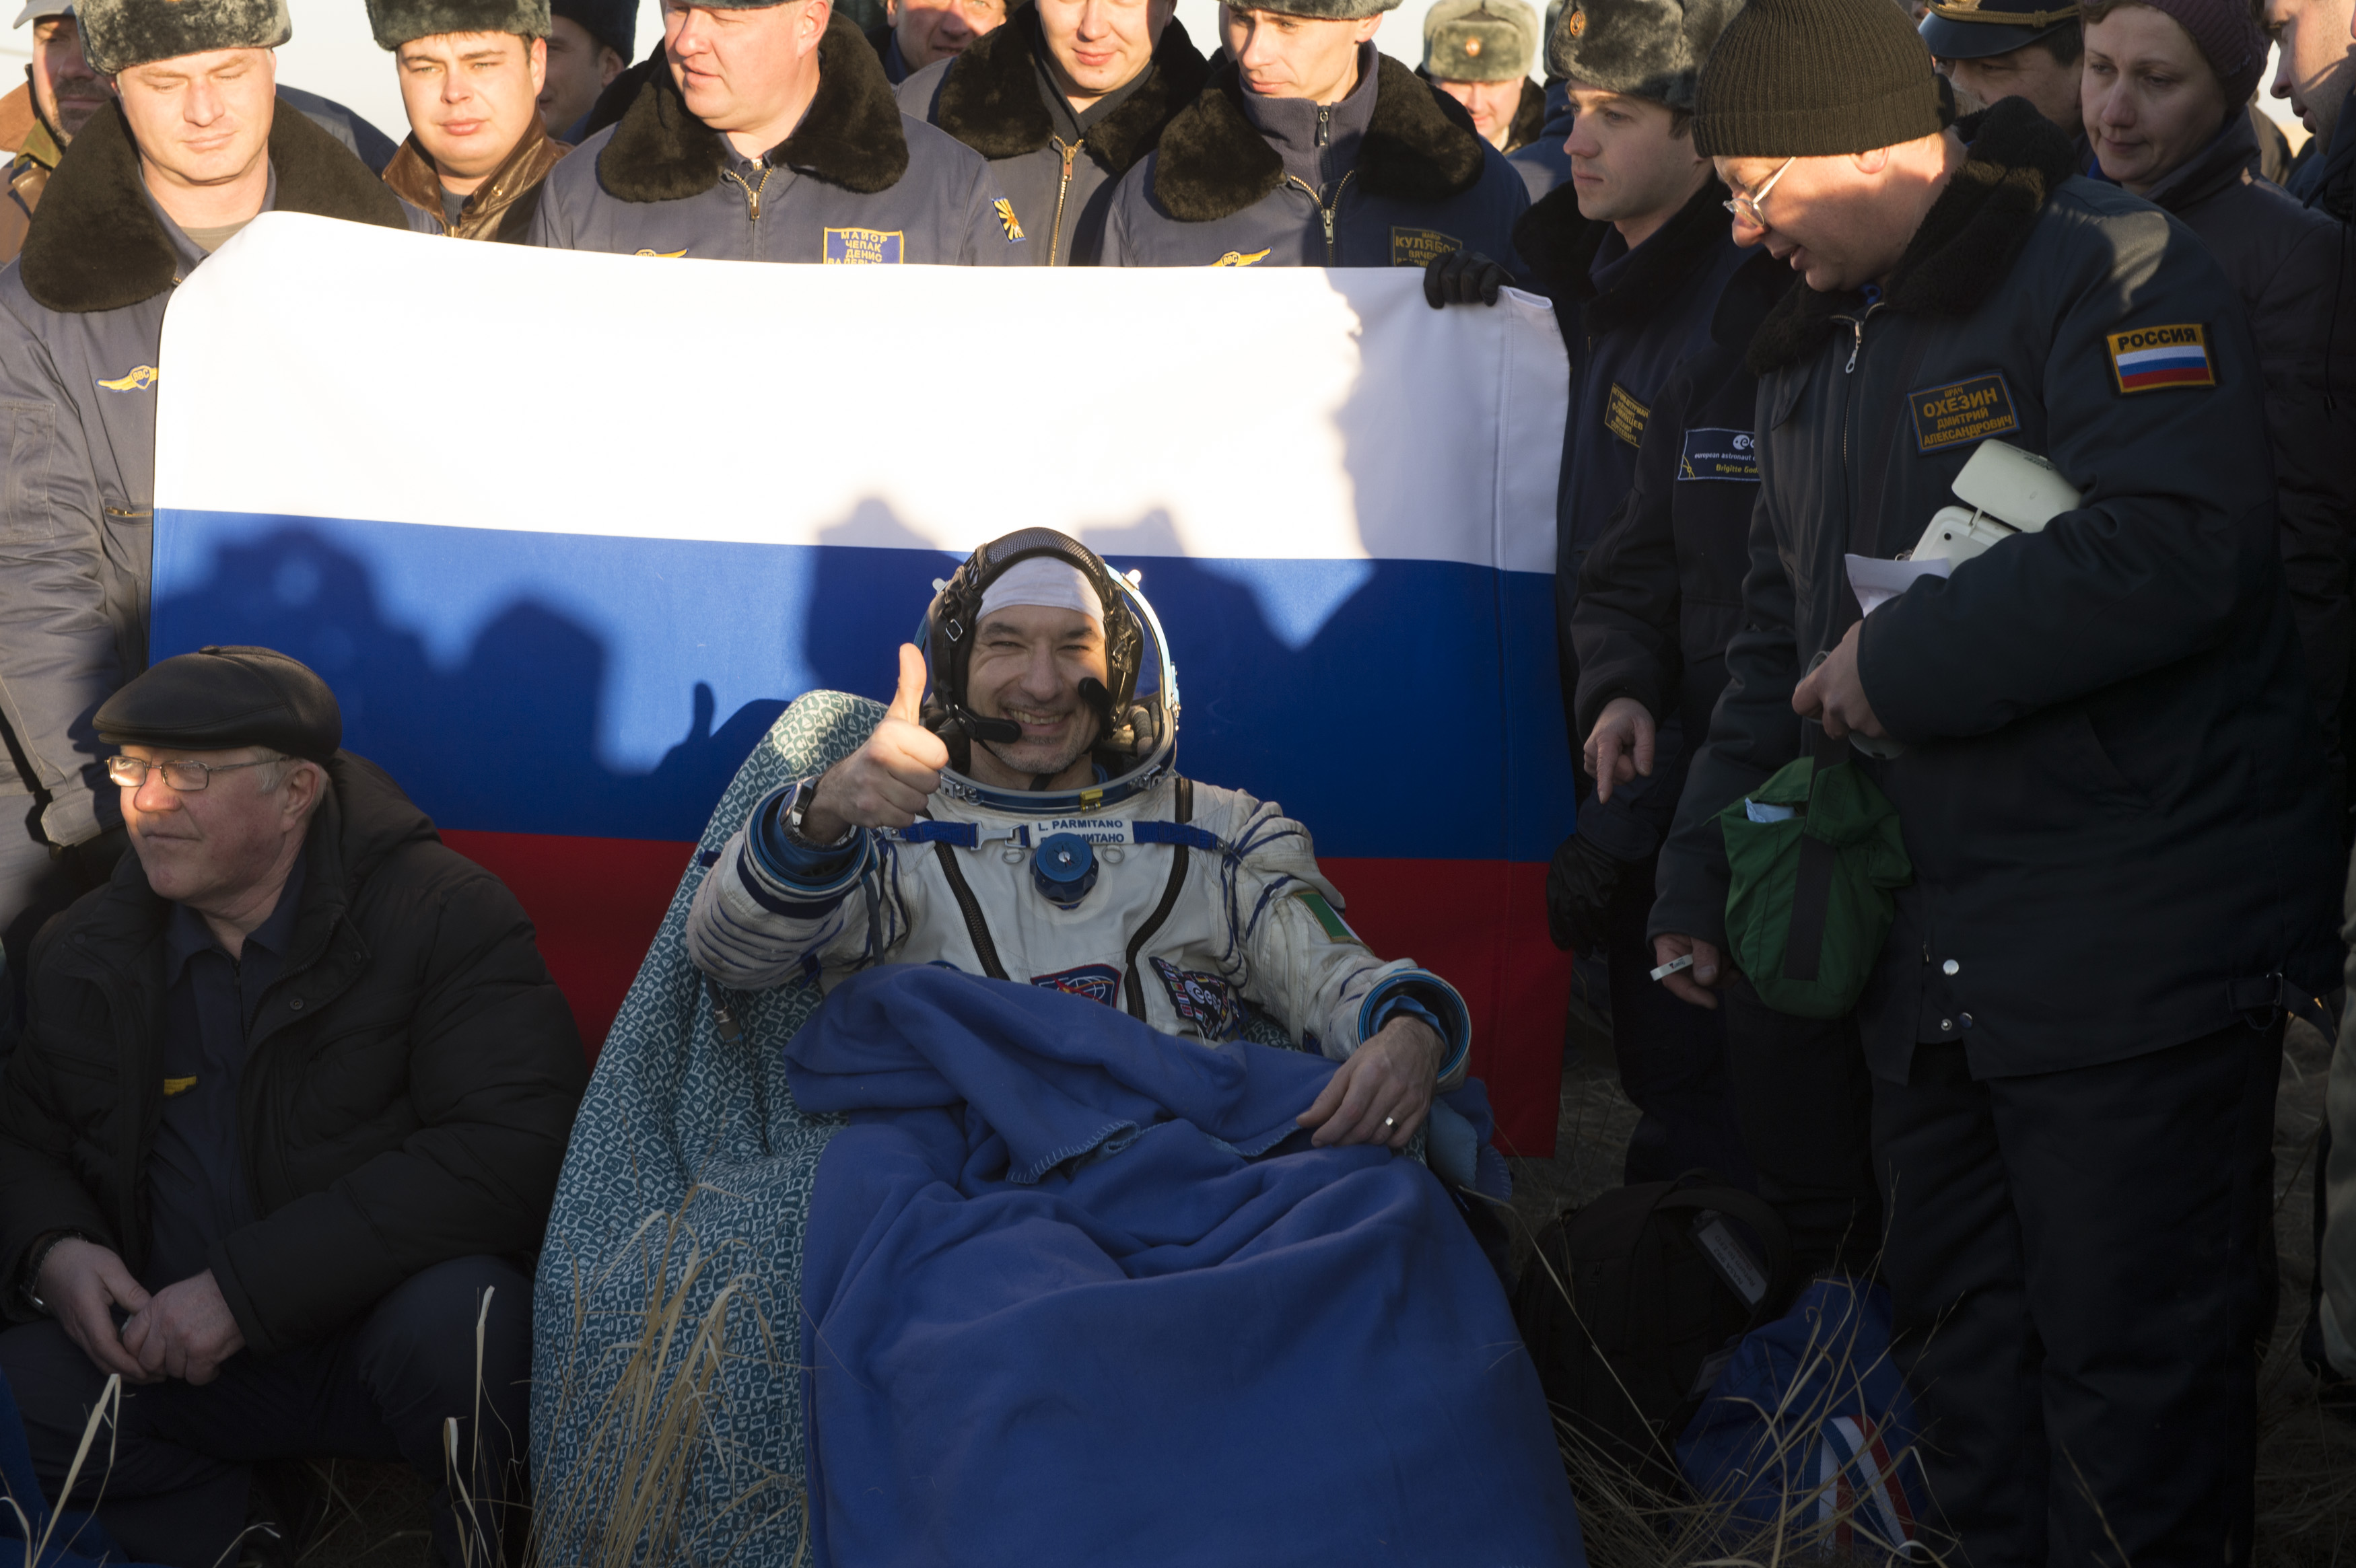 In this handout photo provided by the European Space Agency (ESA), ESA astronaut Luca Parmitano poses for photographs after returning to earth in the Soyuz TMA-09M spacecraft in the Kazakh Steppe region on Novemeber 11, 2013 in Kazakhstan.